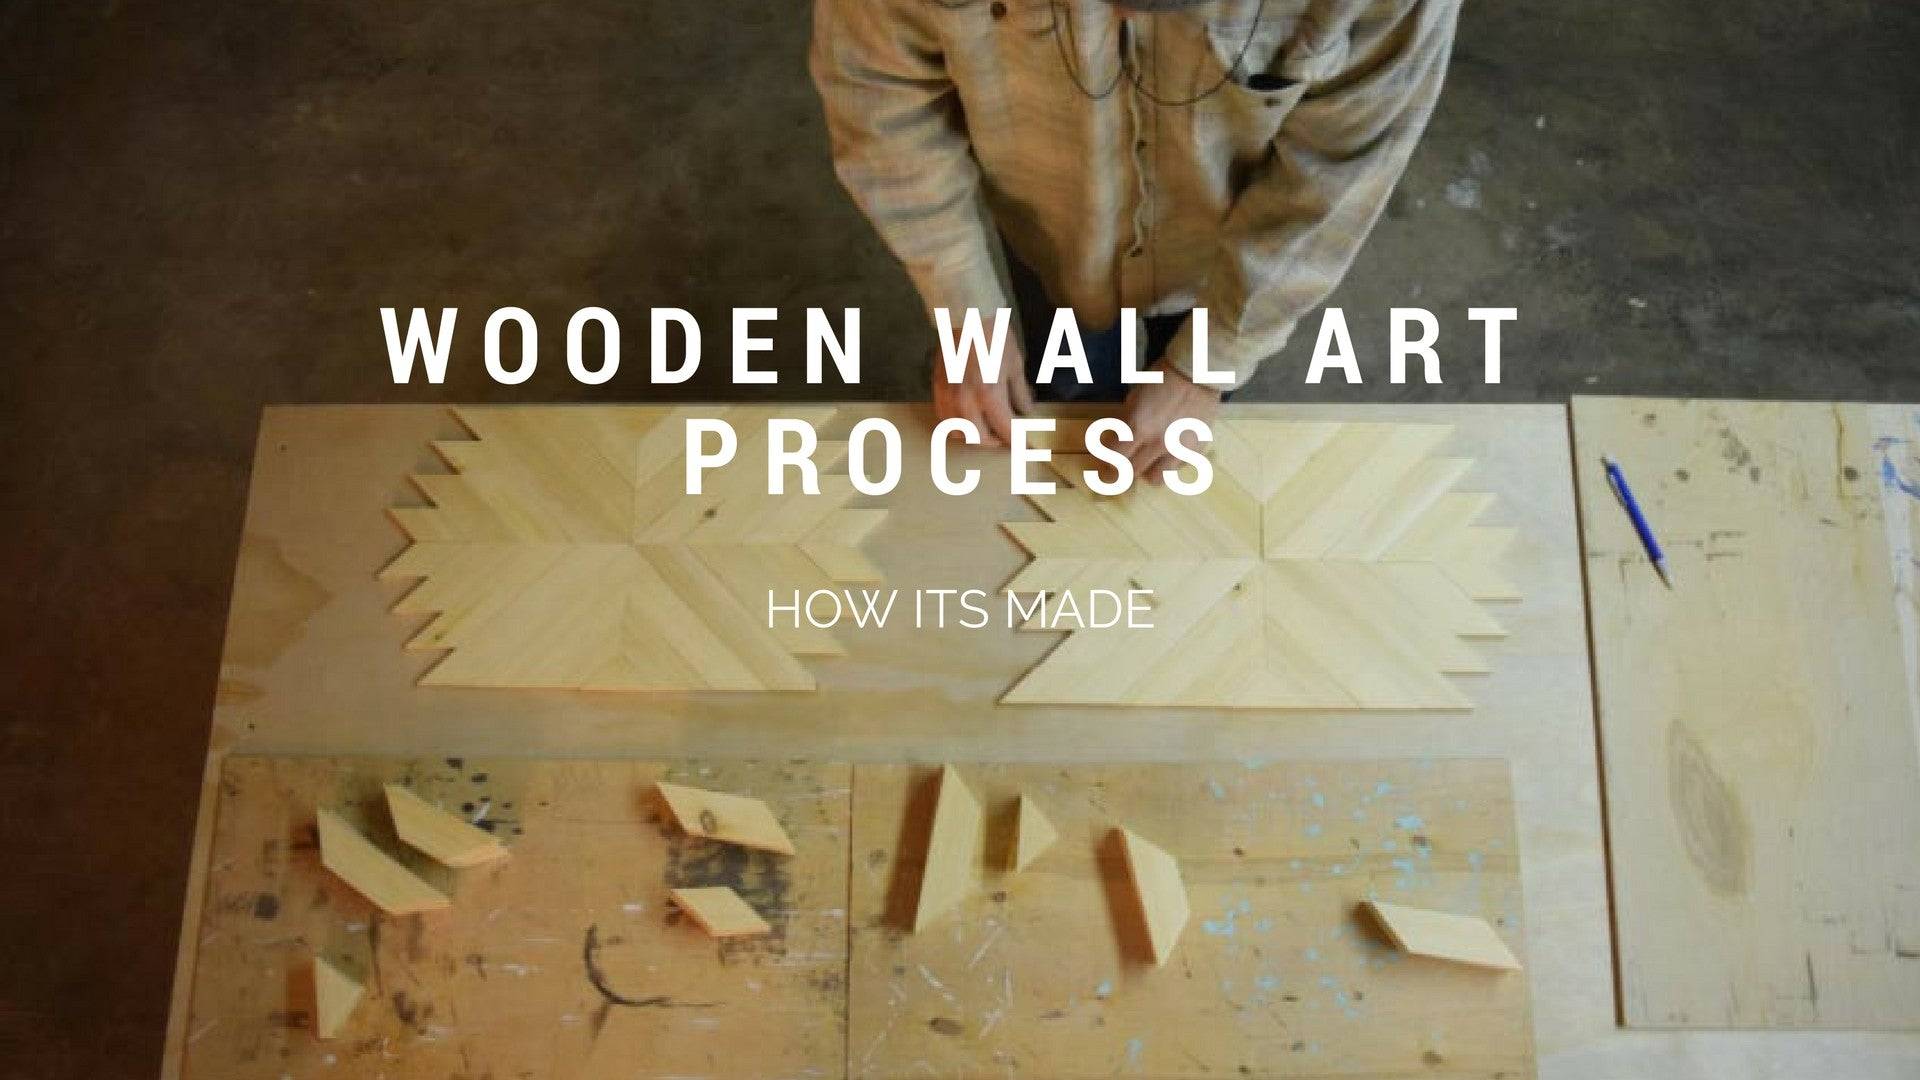 The Process Behind Wooden Wall Art